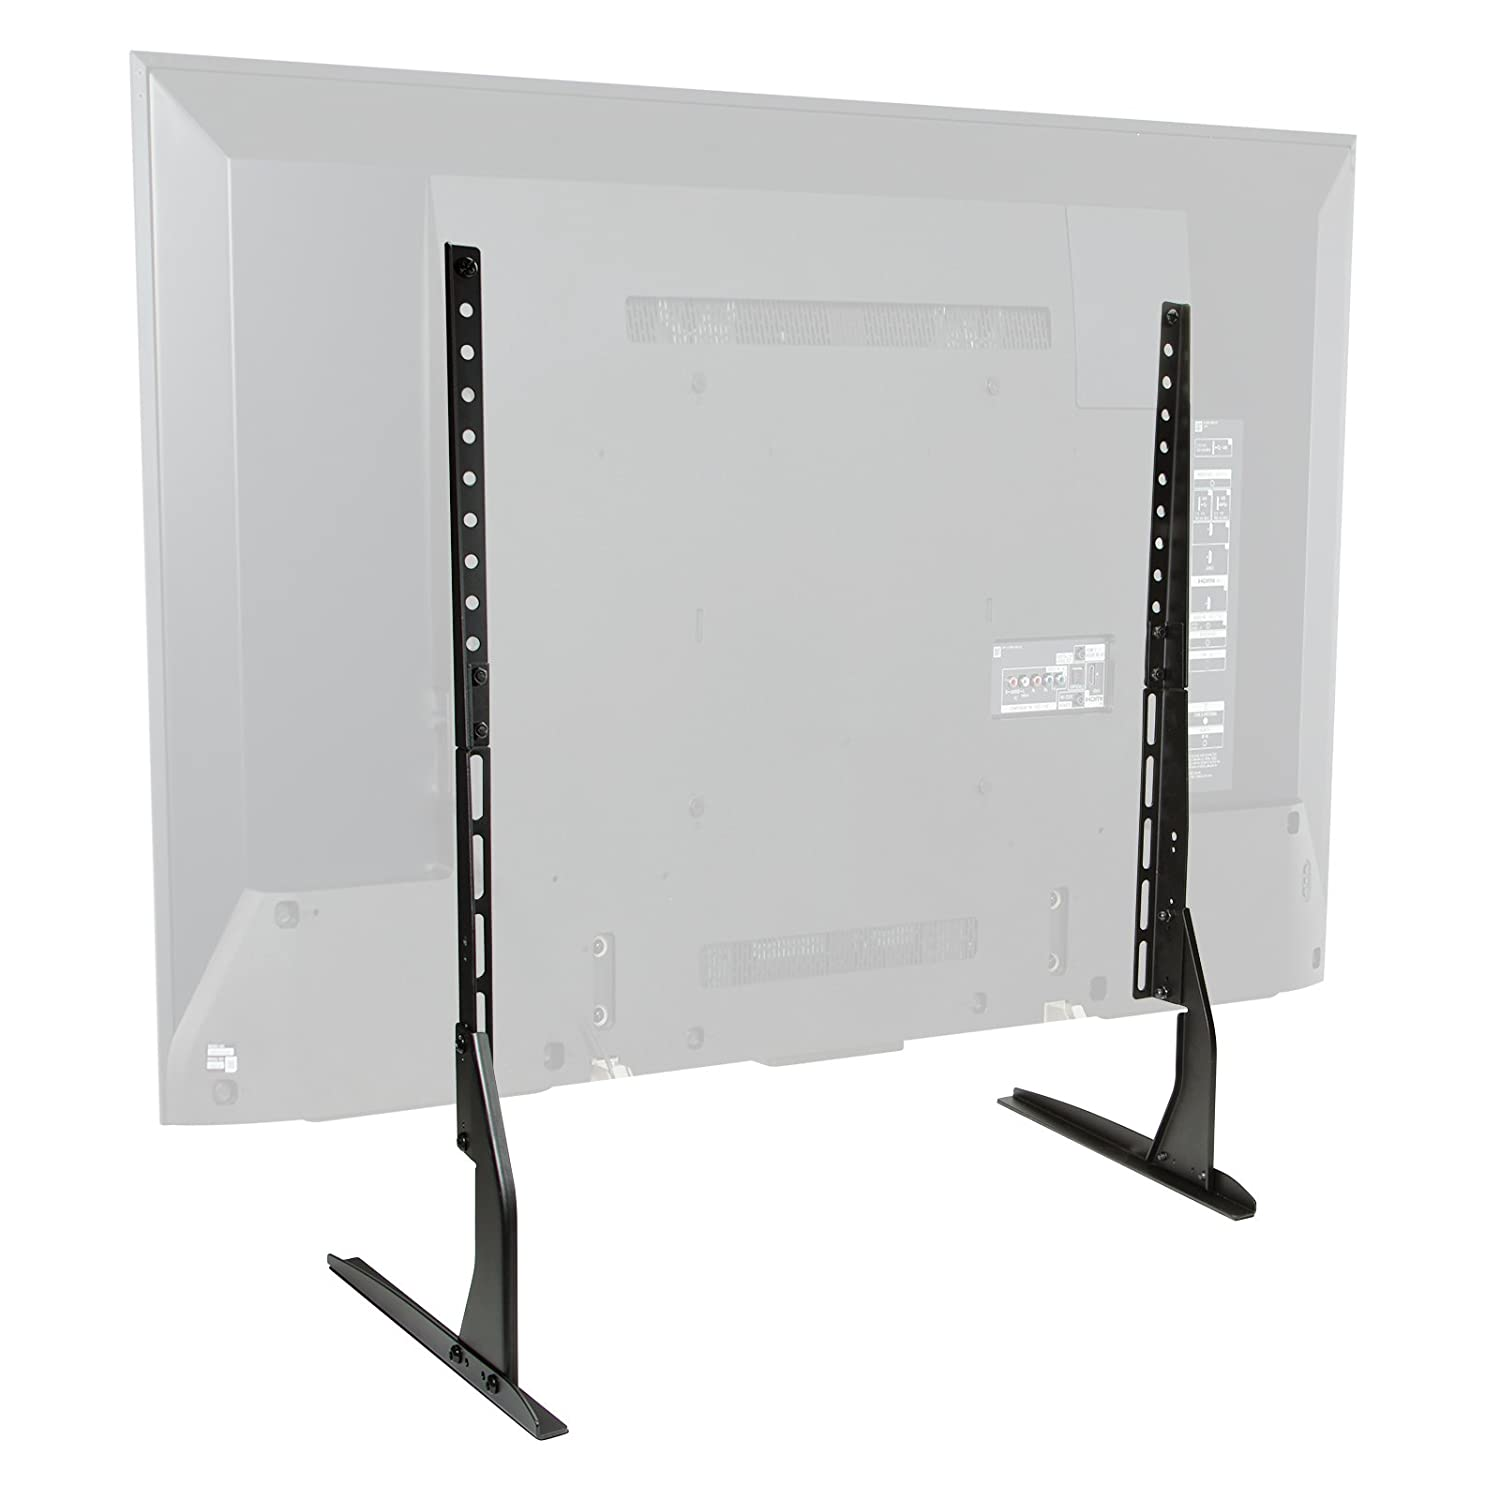 Mount Factory Modern Tabletop TV Stand – Universal Flat Screen Base Replacement for 24 32 40 42 50 55 60 65 Screens